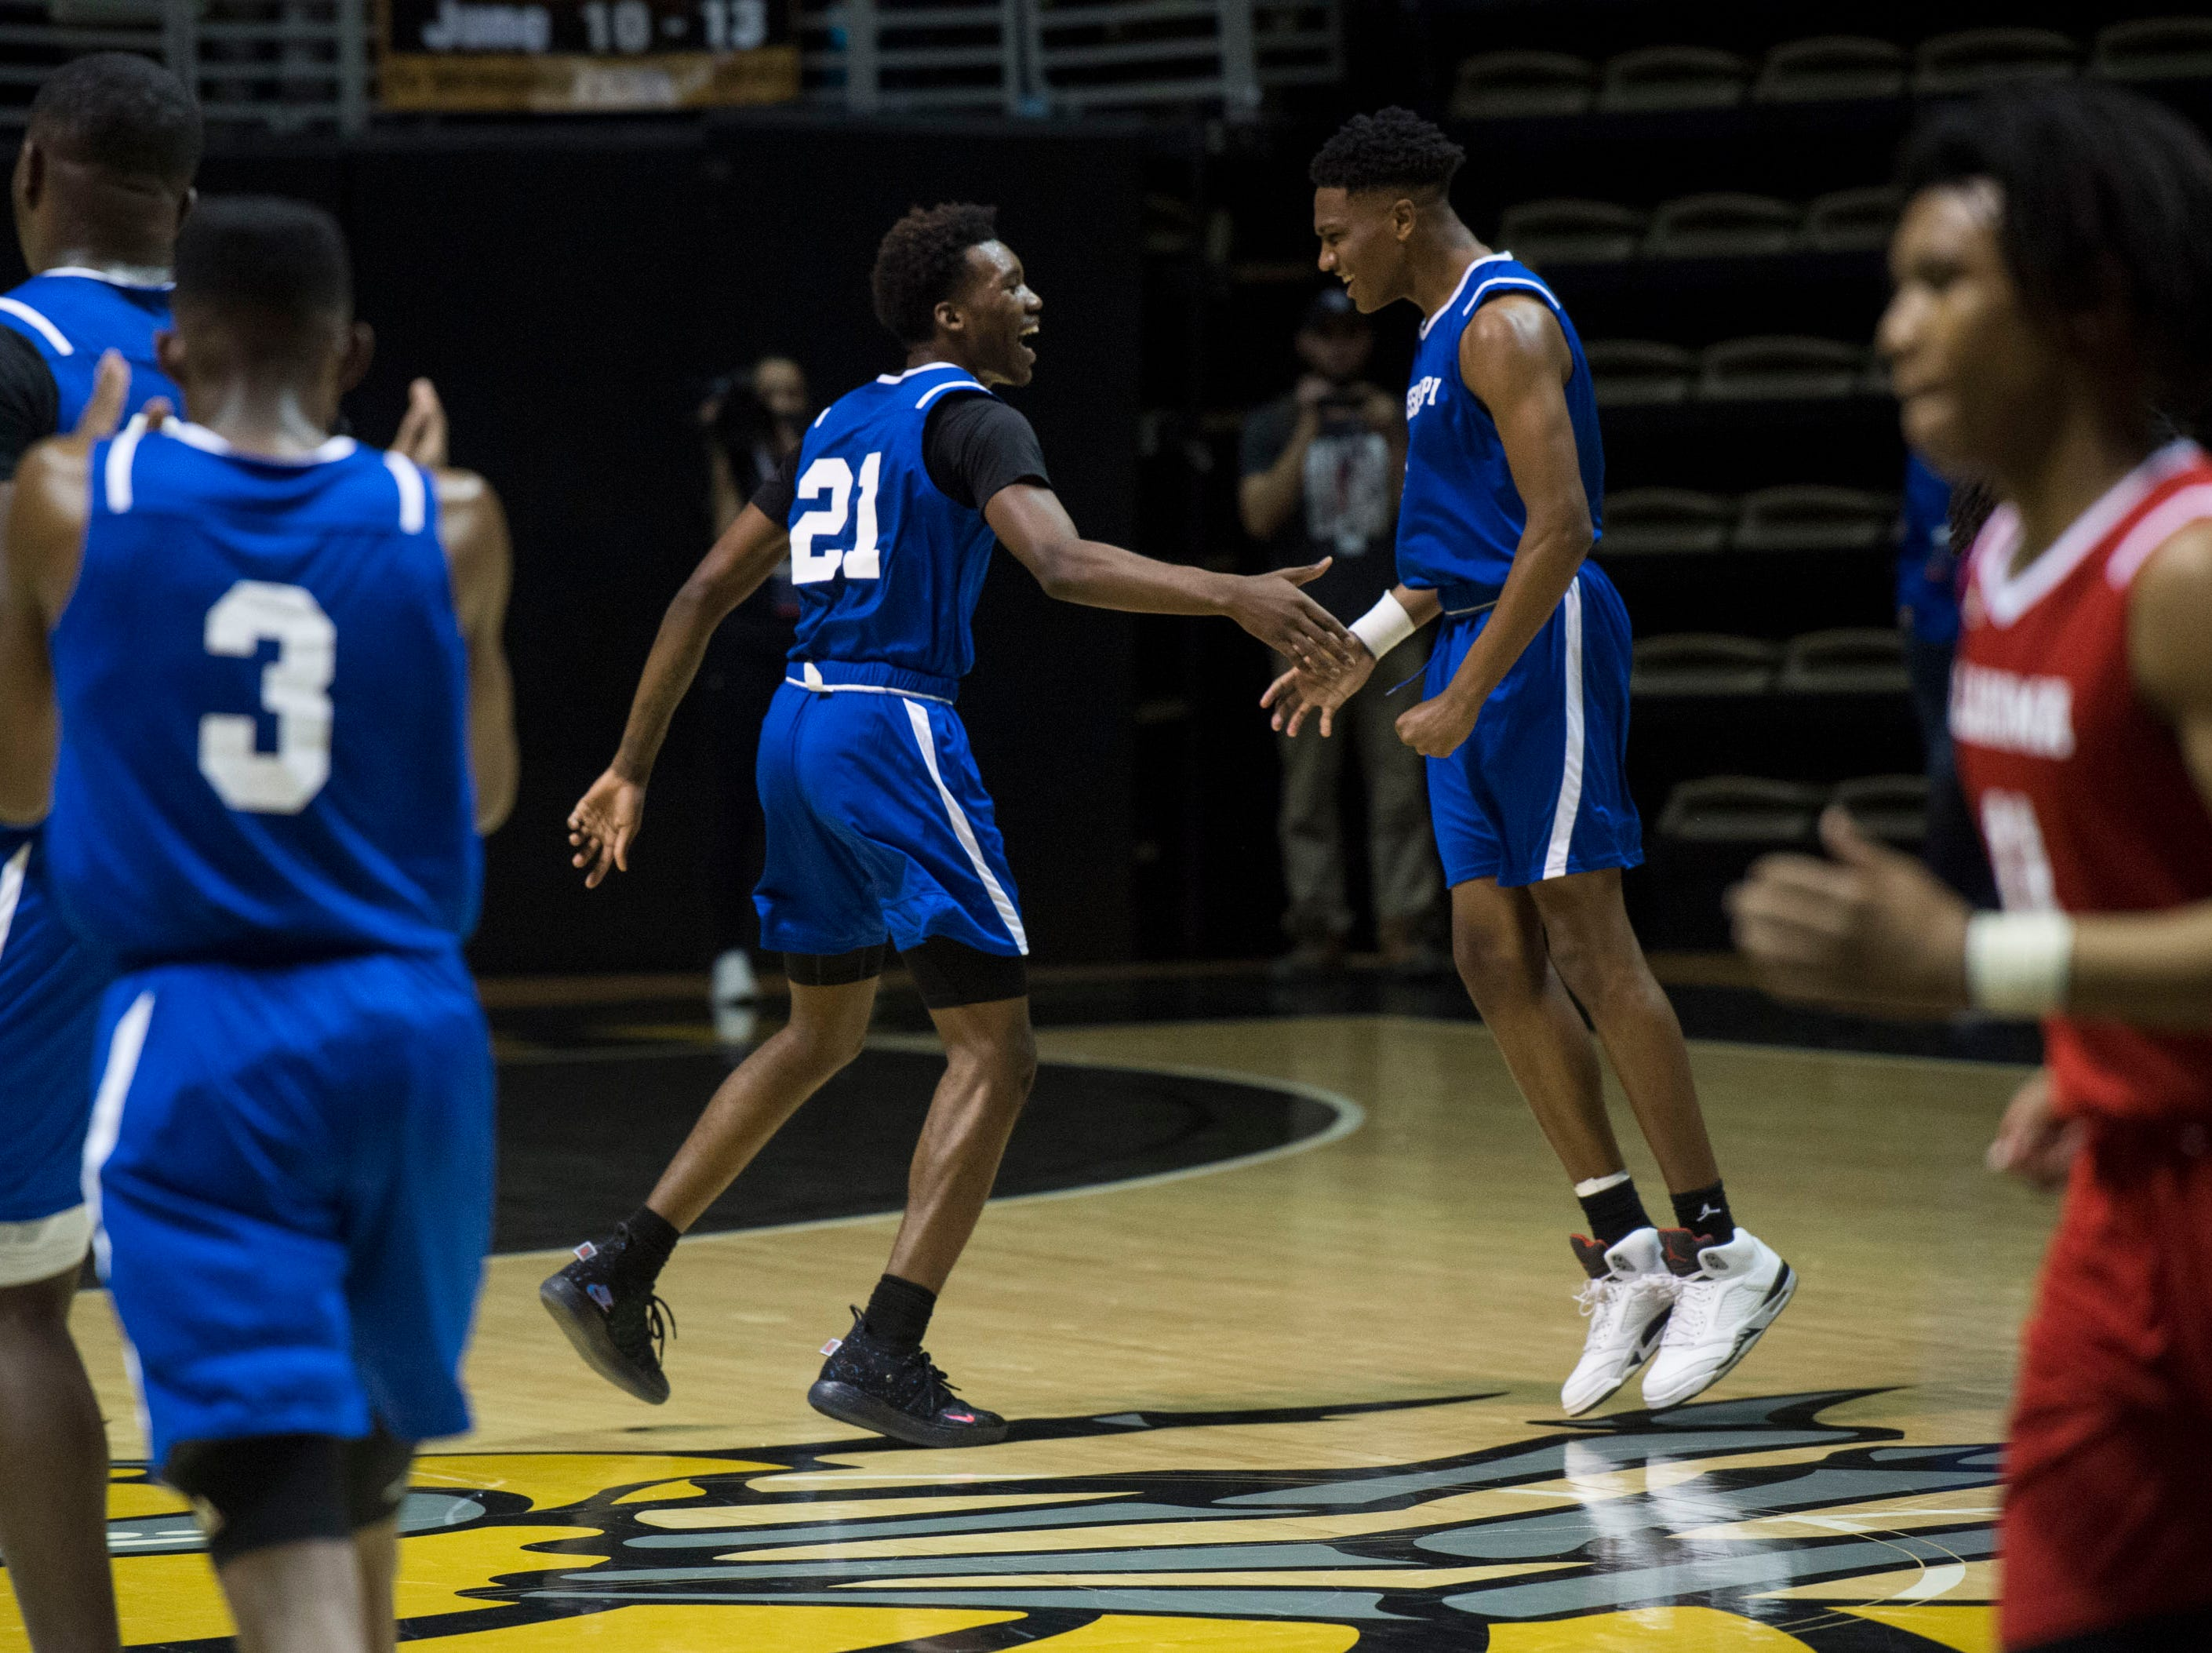 Mississippi's Jaylen Forbes (21) and Brandon Weatherspoon (15) celebrate a play during the Alabama-Mississippi All-Star game at the Dunn-Oliver Acadome in Montgomery, Ala., on Friday, March 15, 2019. Alabama All-stars defeated the Mississippi All-stars 107-90.